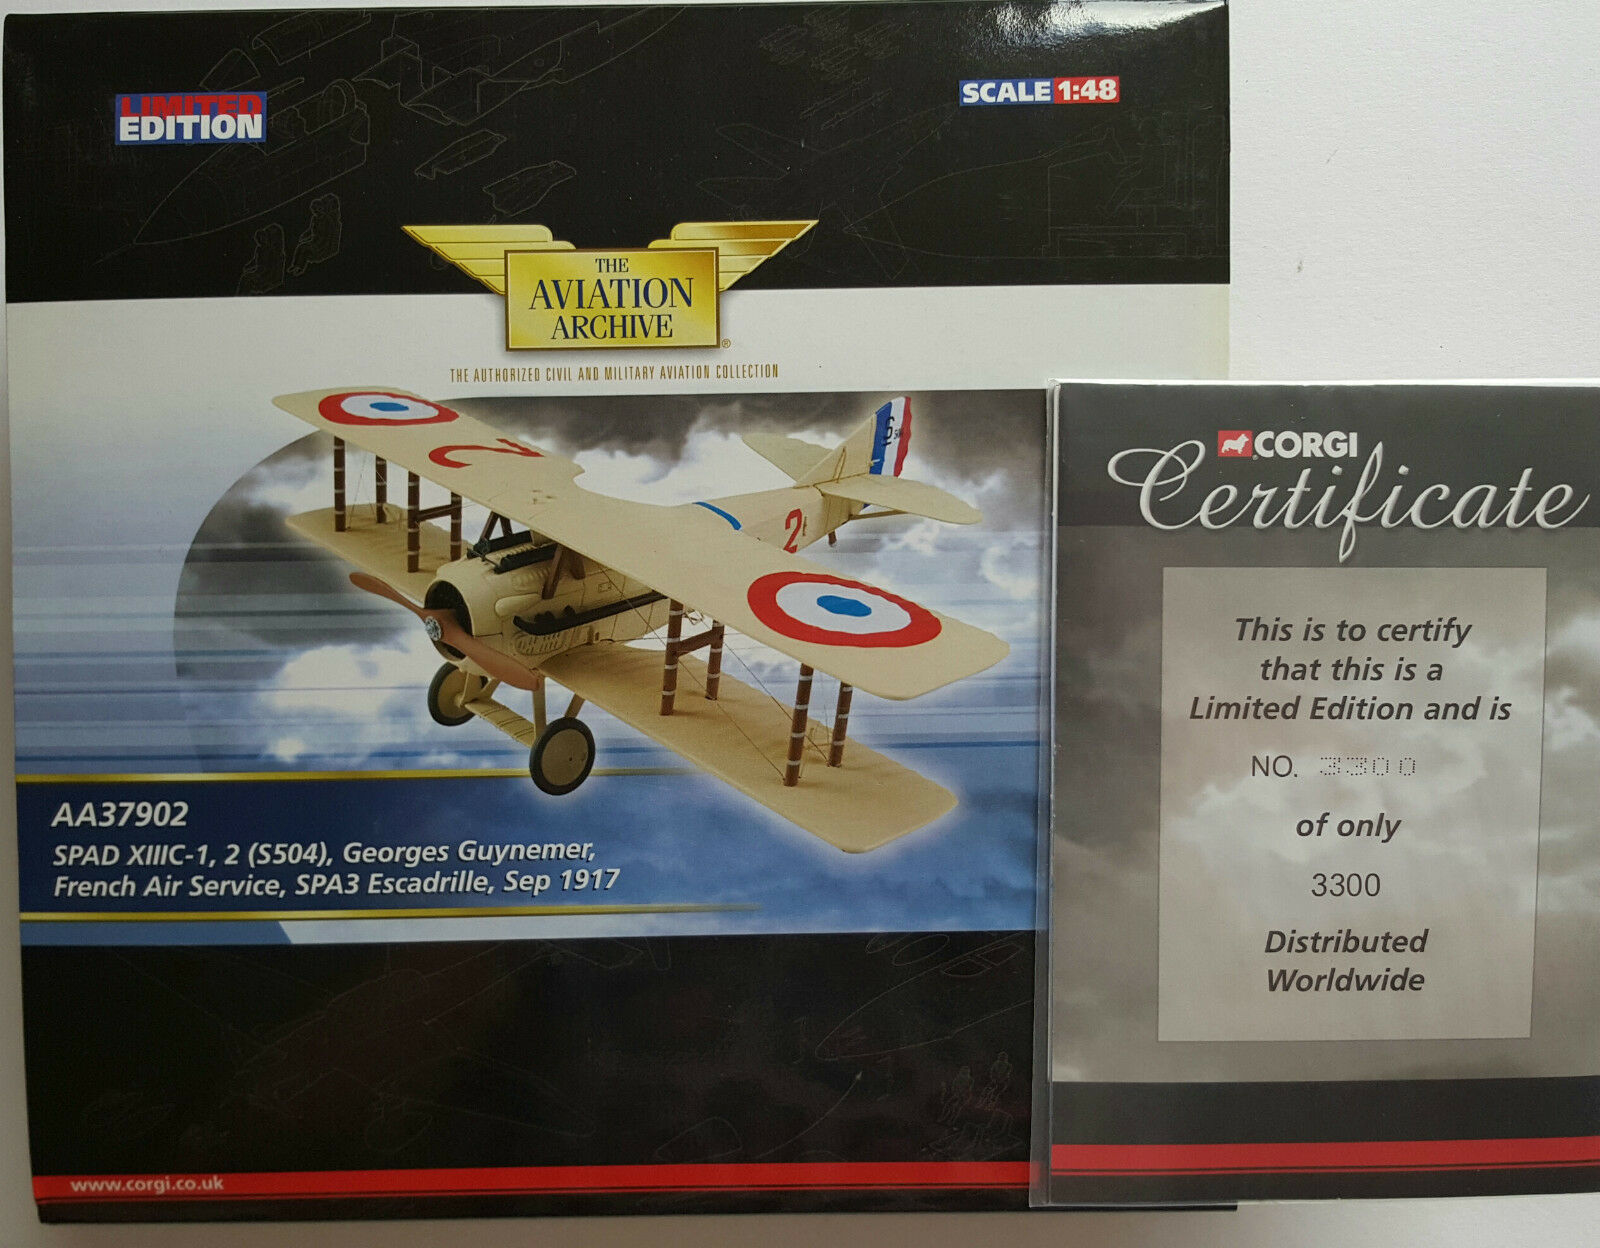 Corgi Aviation Spad XIIIC-1 French Air Serv. AA37902 Certificate No 3300 of 3300